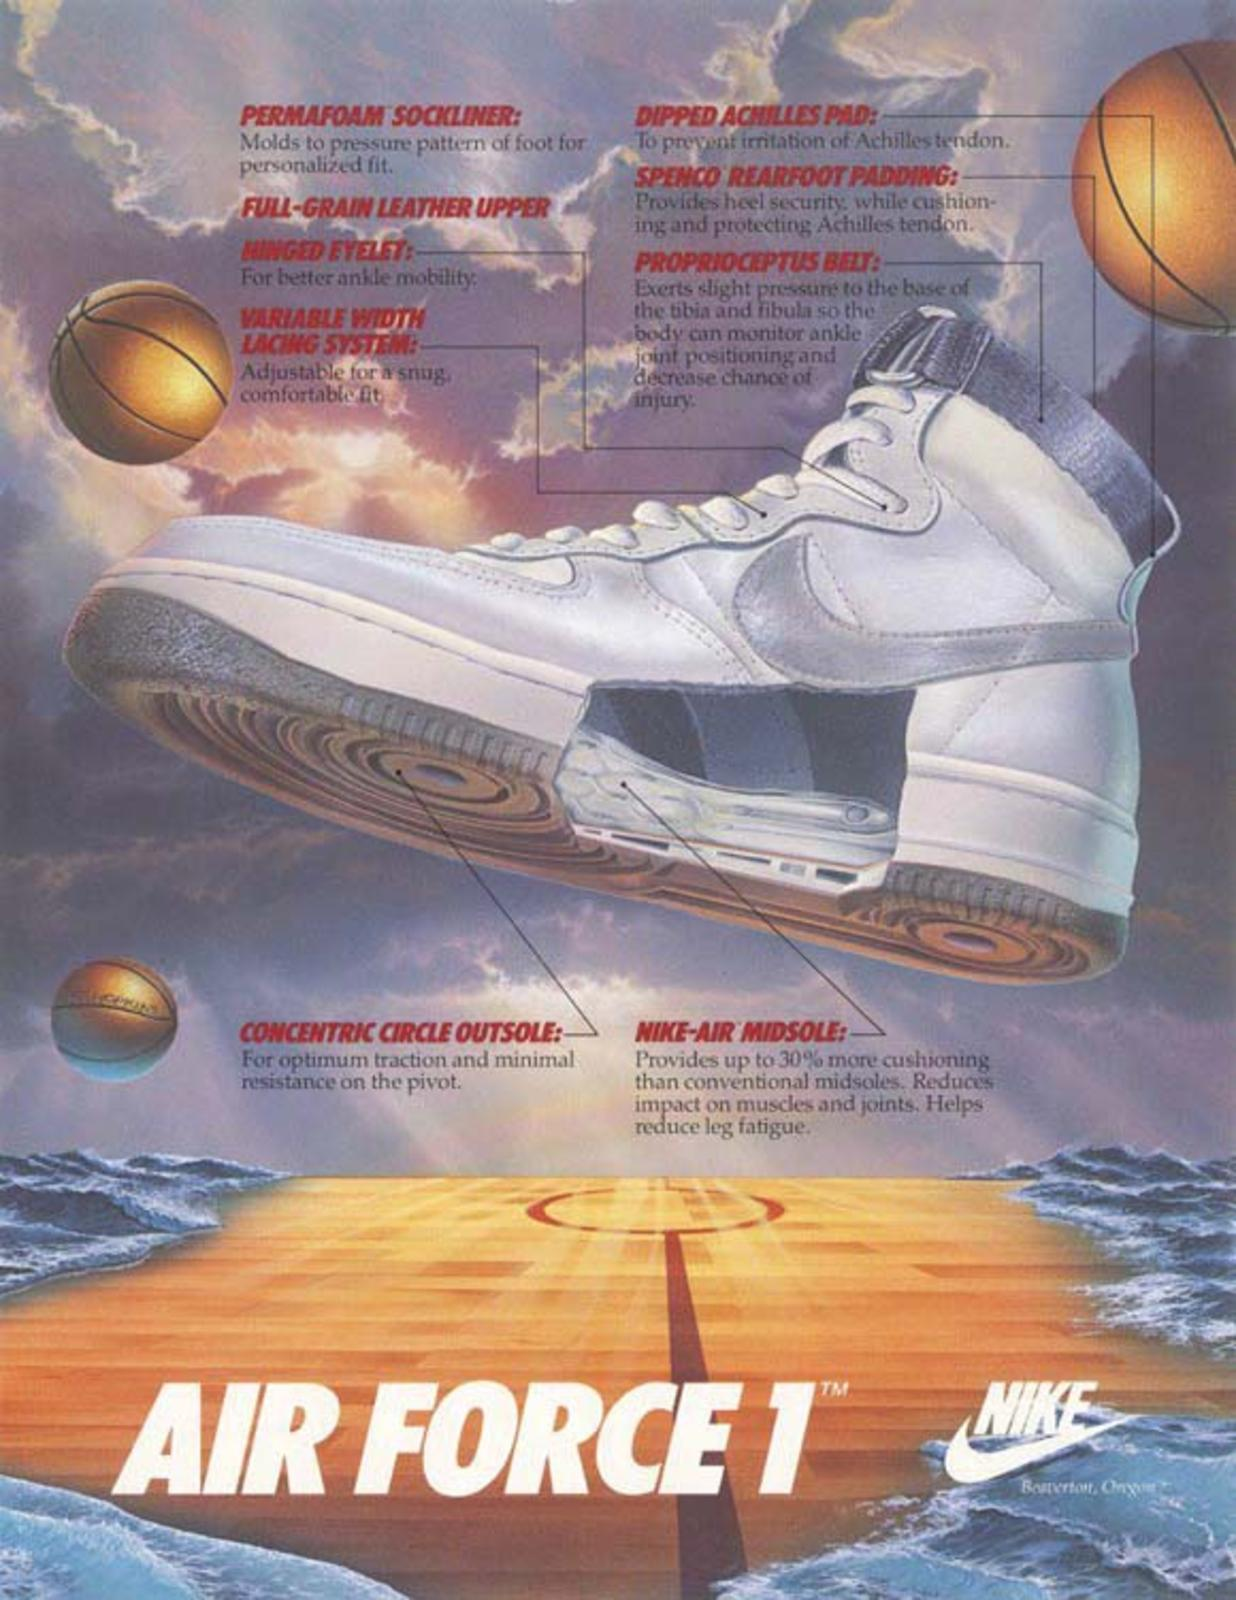 Nike-Air-Force-1-Technology-Ad